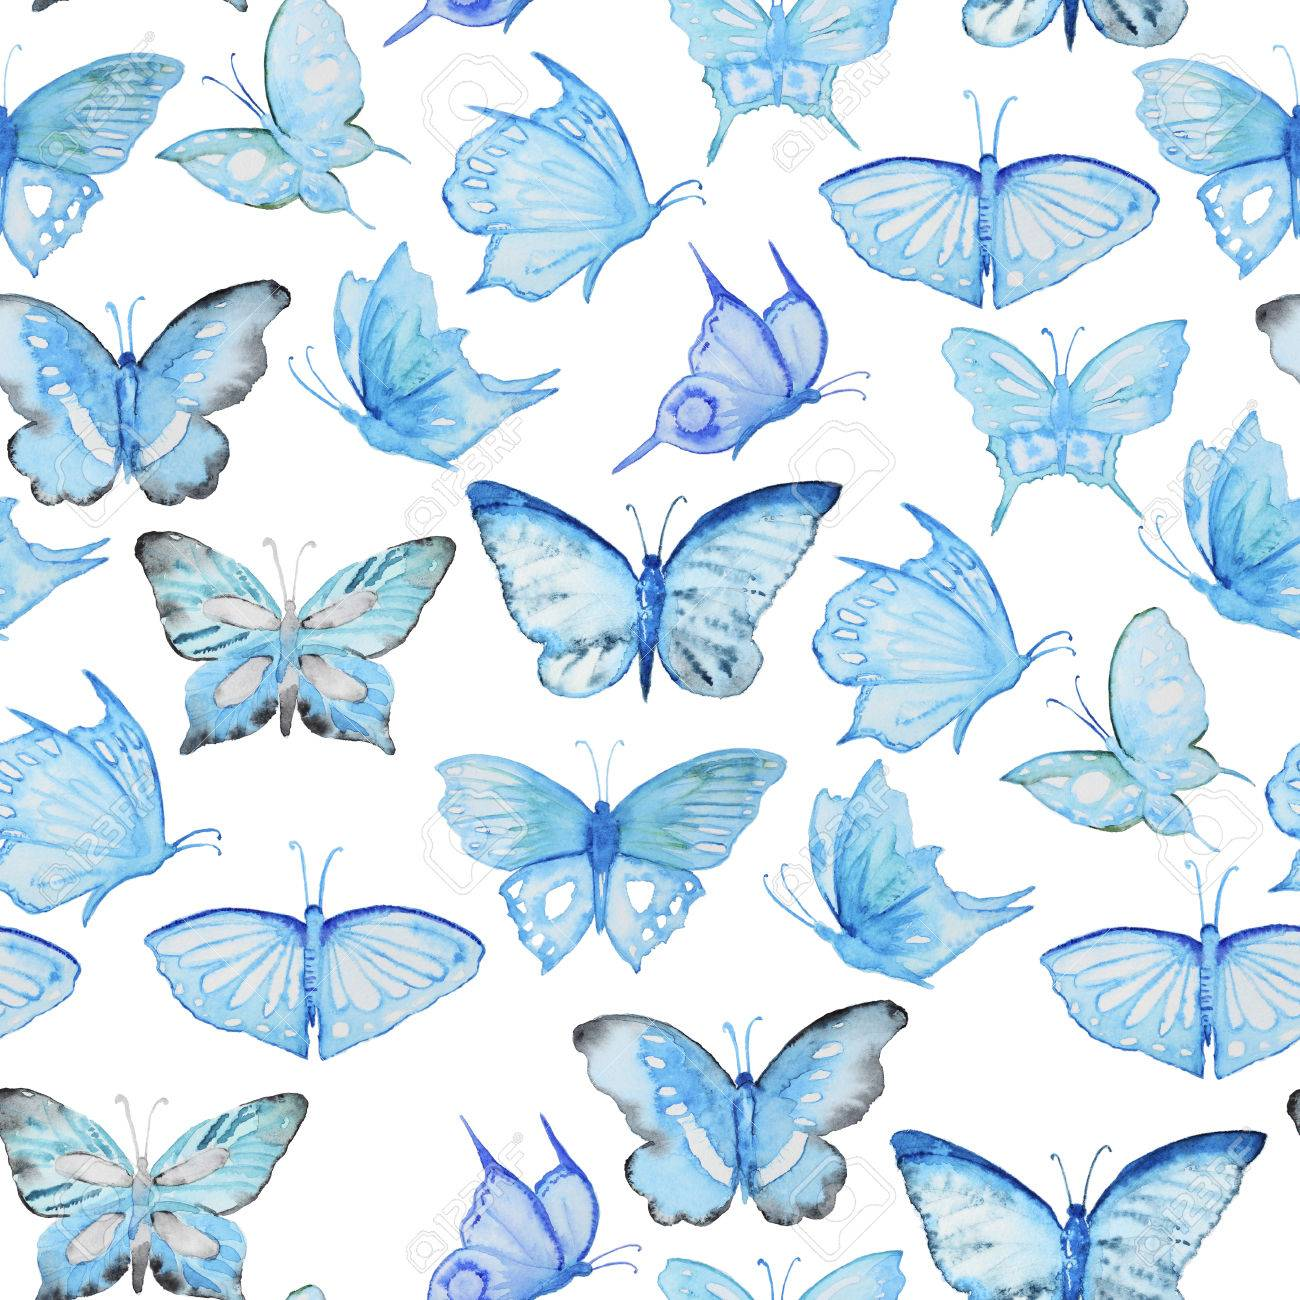 Seamless Watercolor Pattern With Blue Butterfly Vintage Seamless